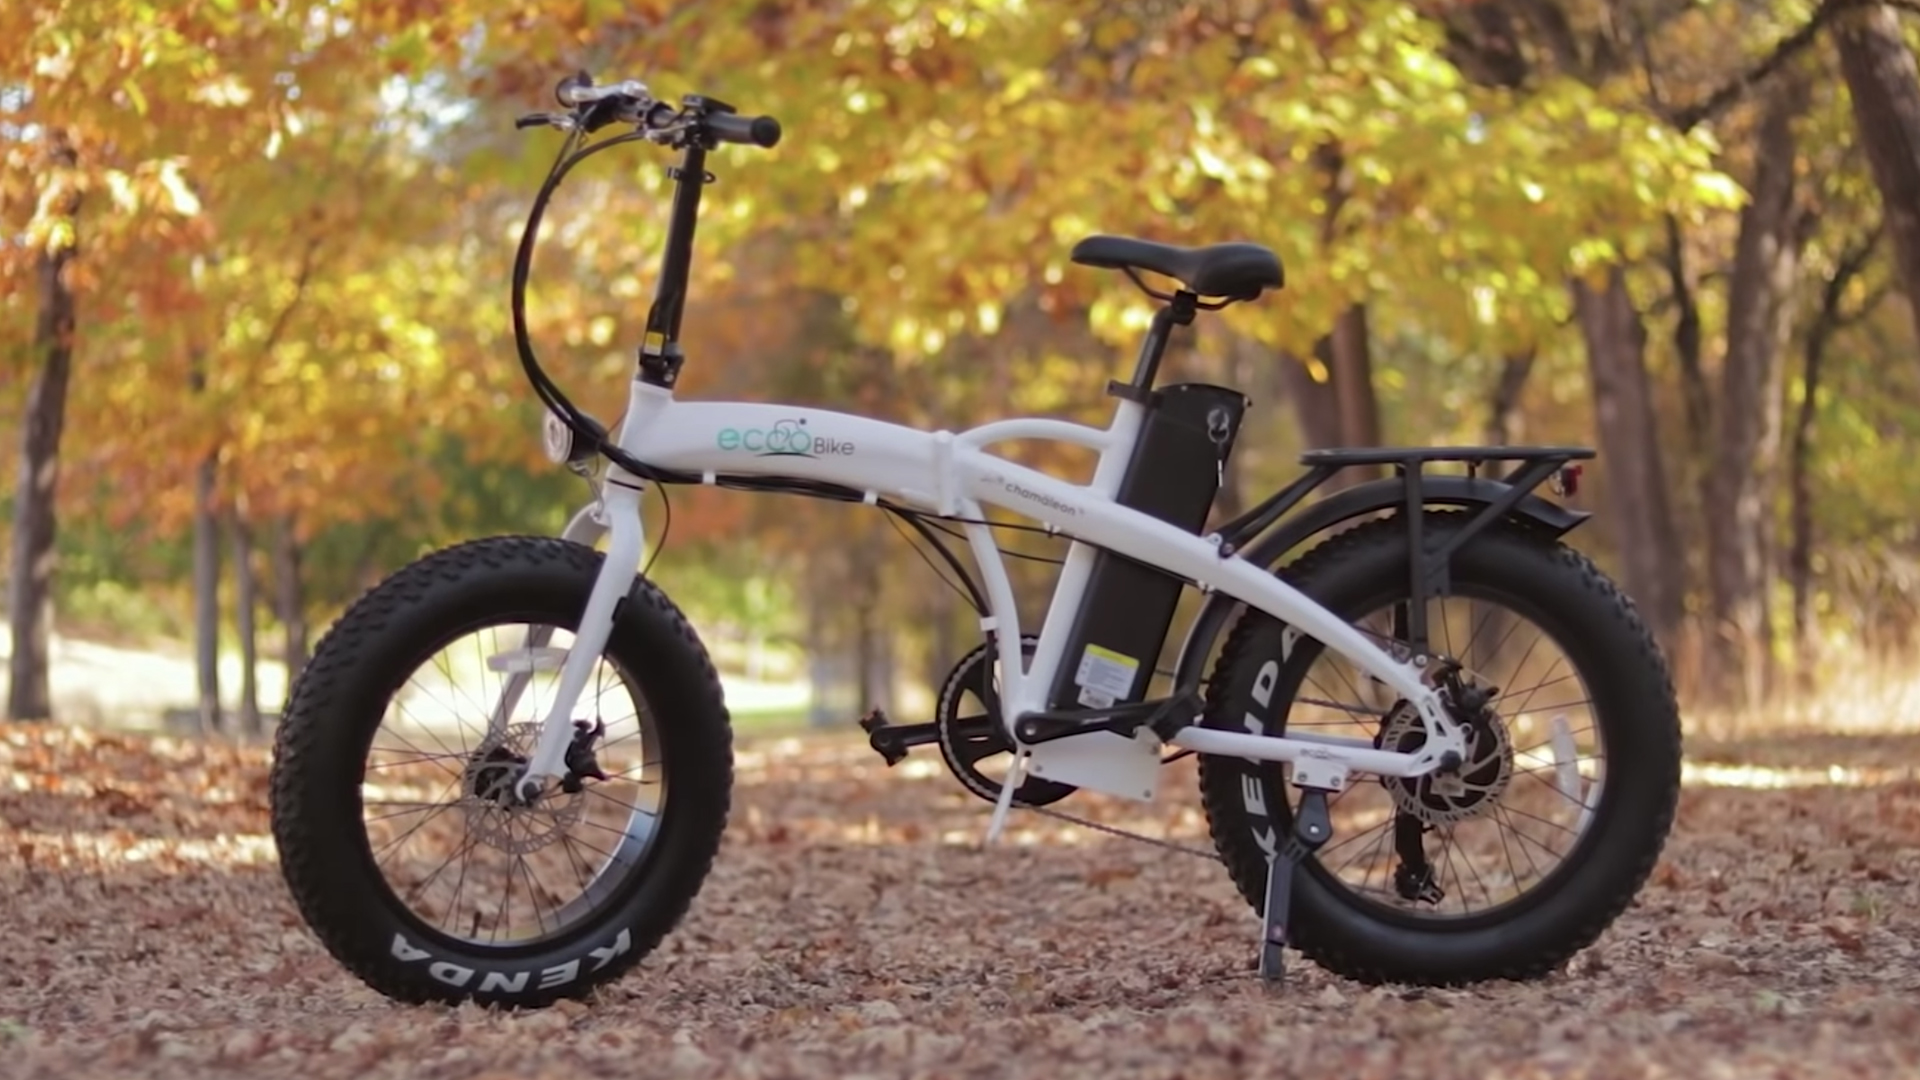 electrified-reviews-eccobike-chamaleon-folding-fat-tire-electric-bike-review-profile.jpg